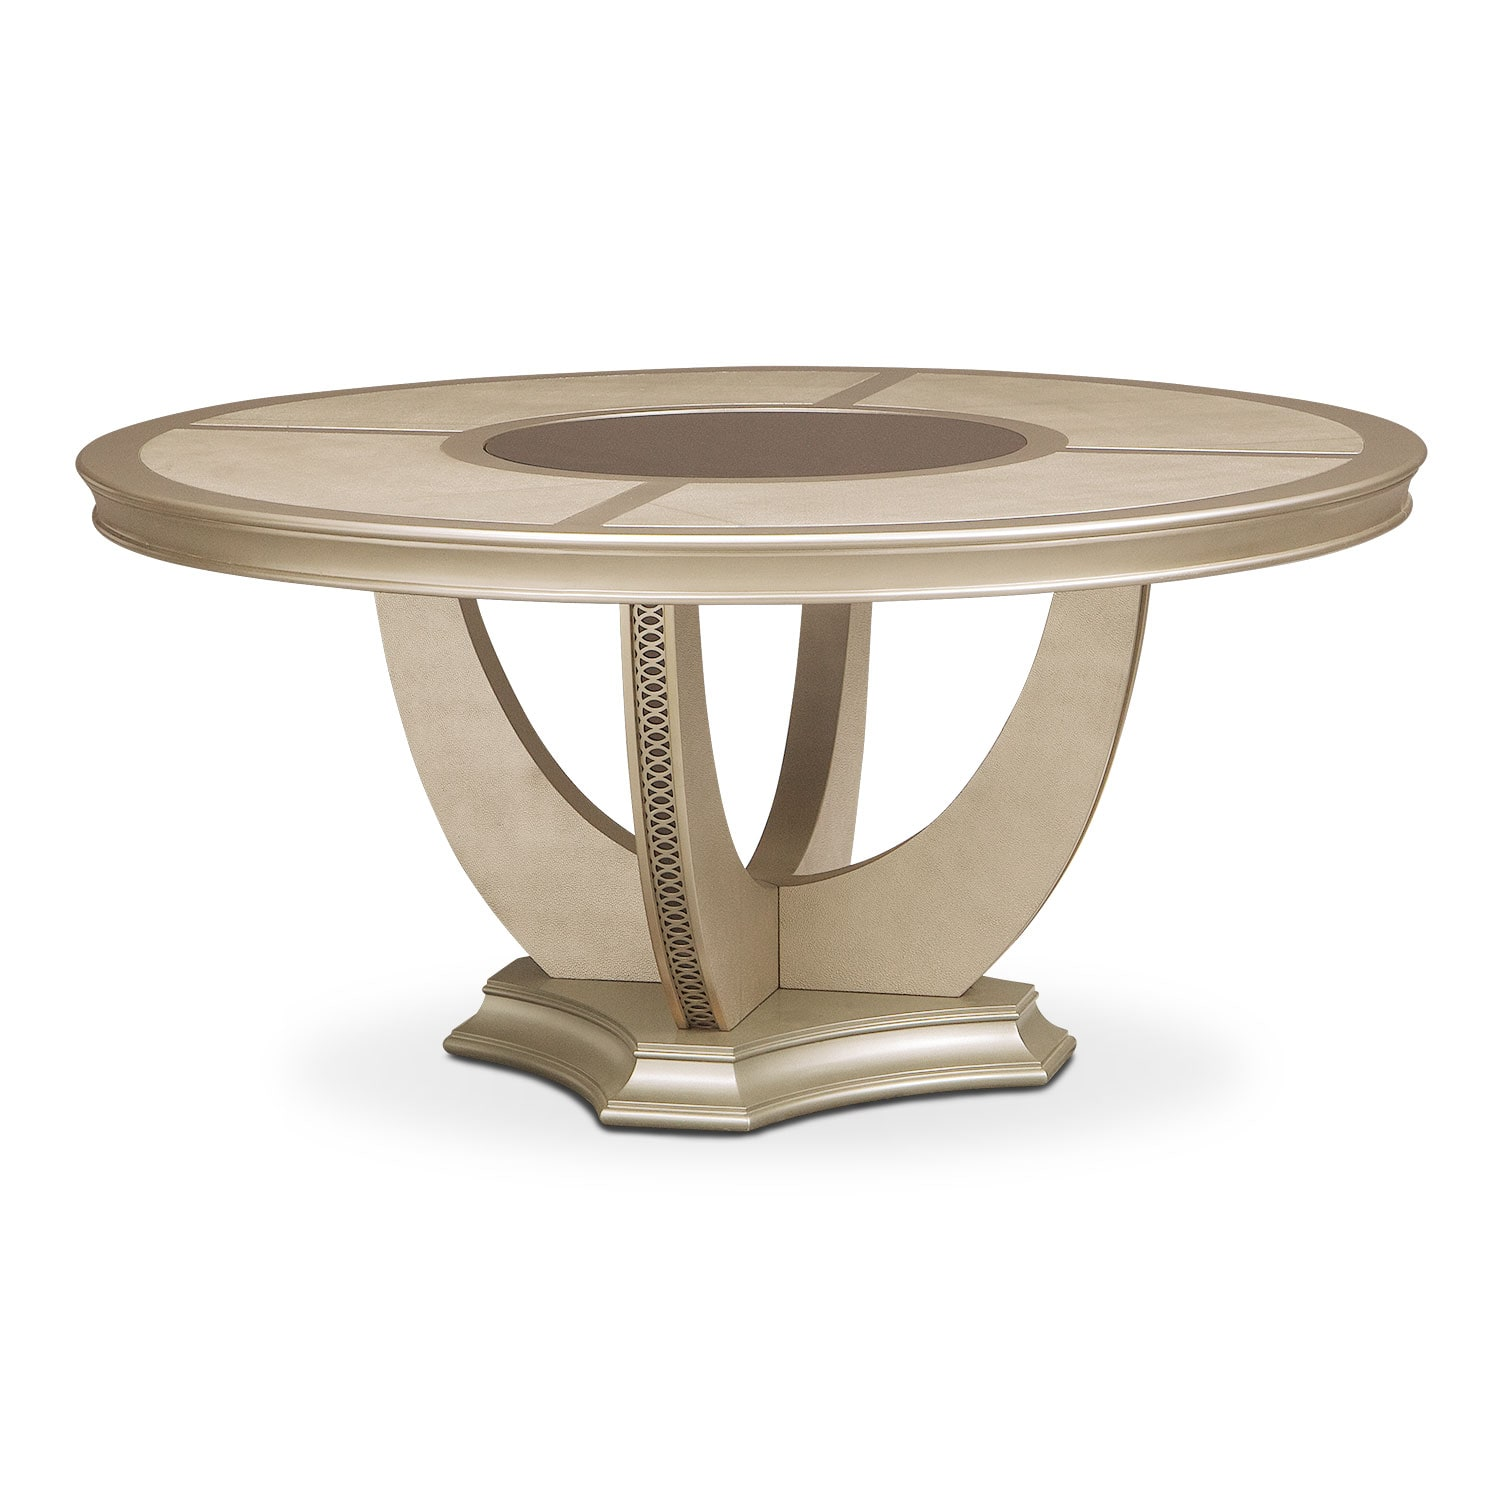 [Allegro Round Dining Table]